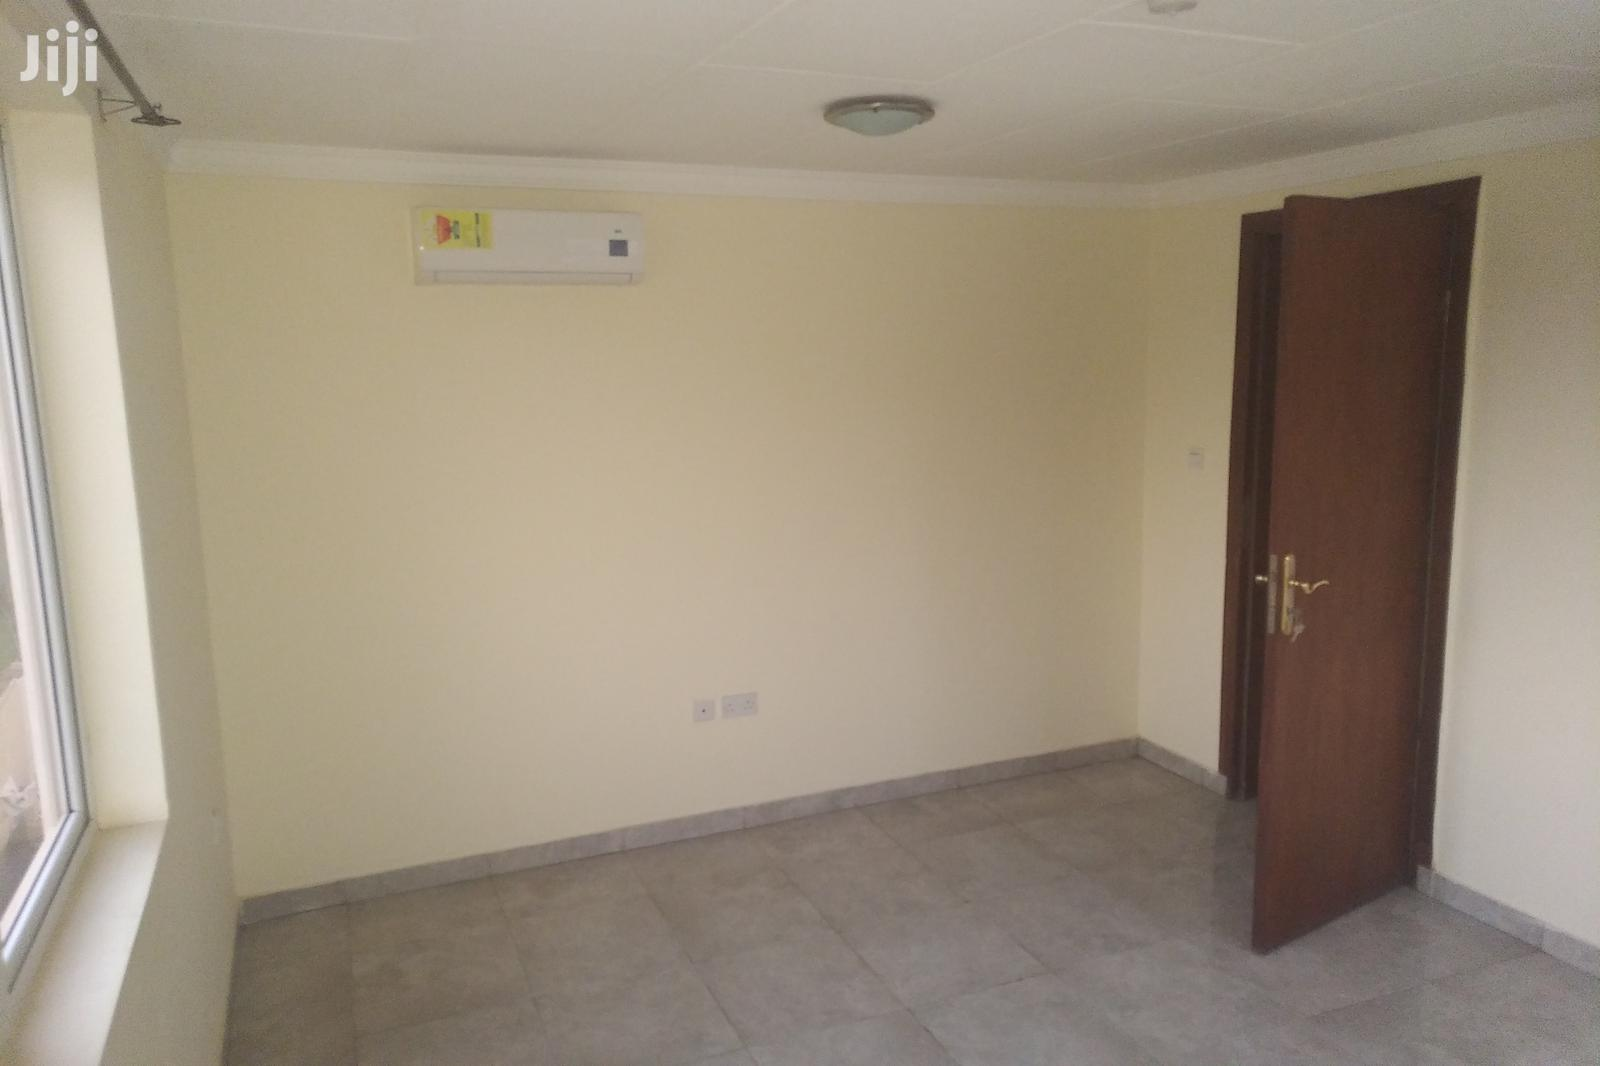 2 Bedroom Semi-furnished Apartment For Rent